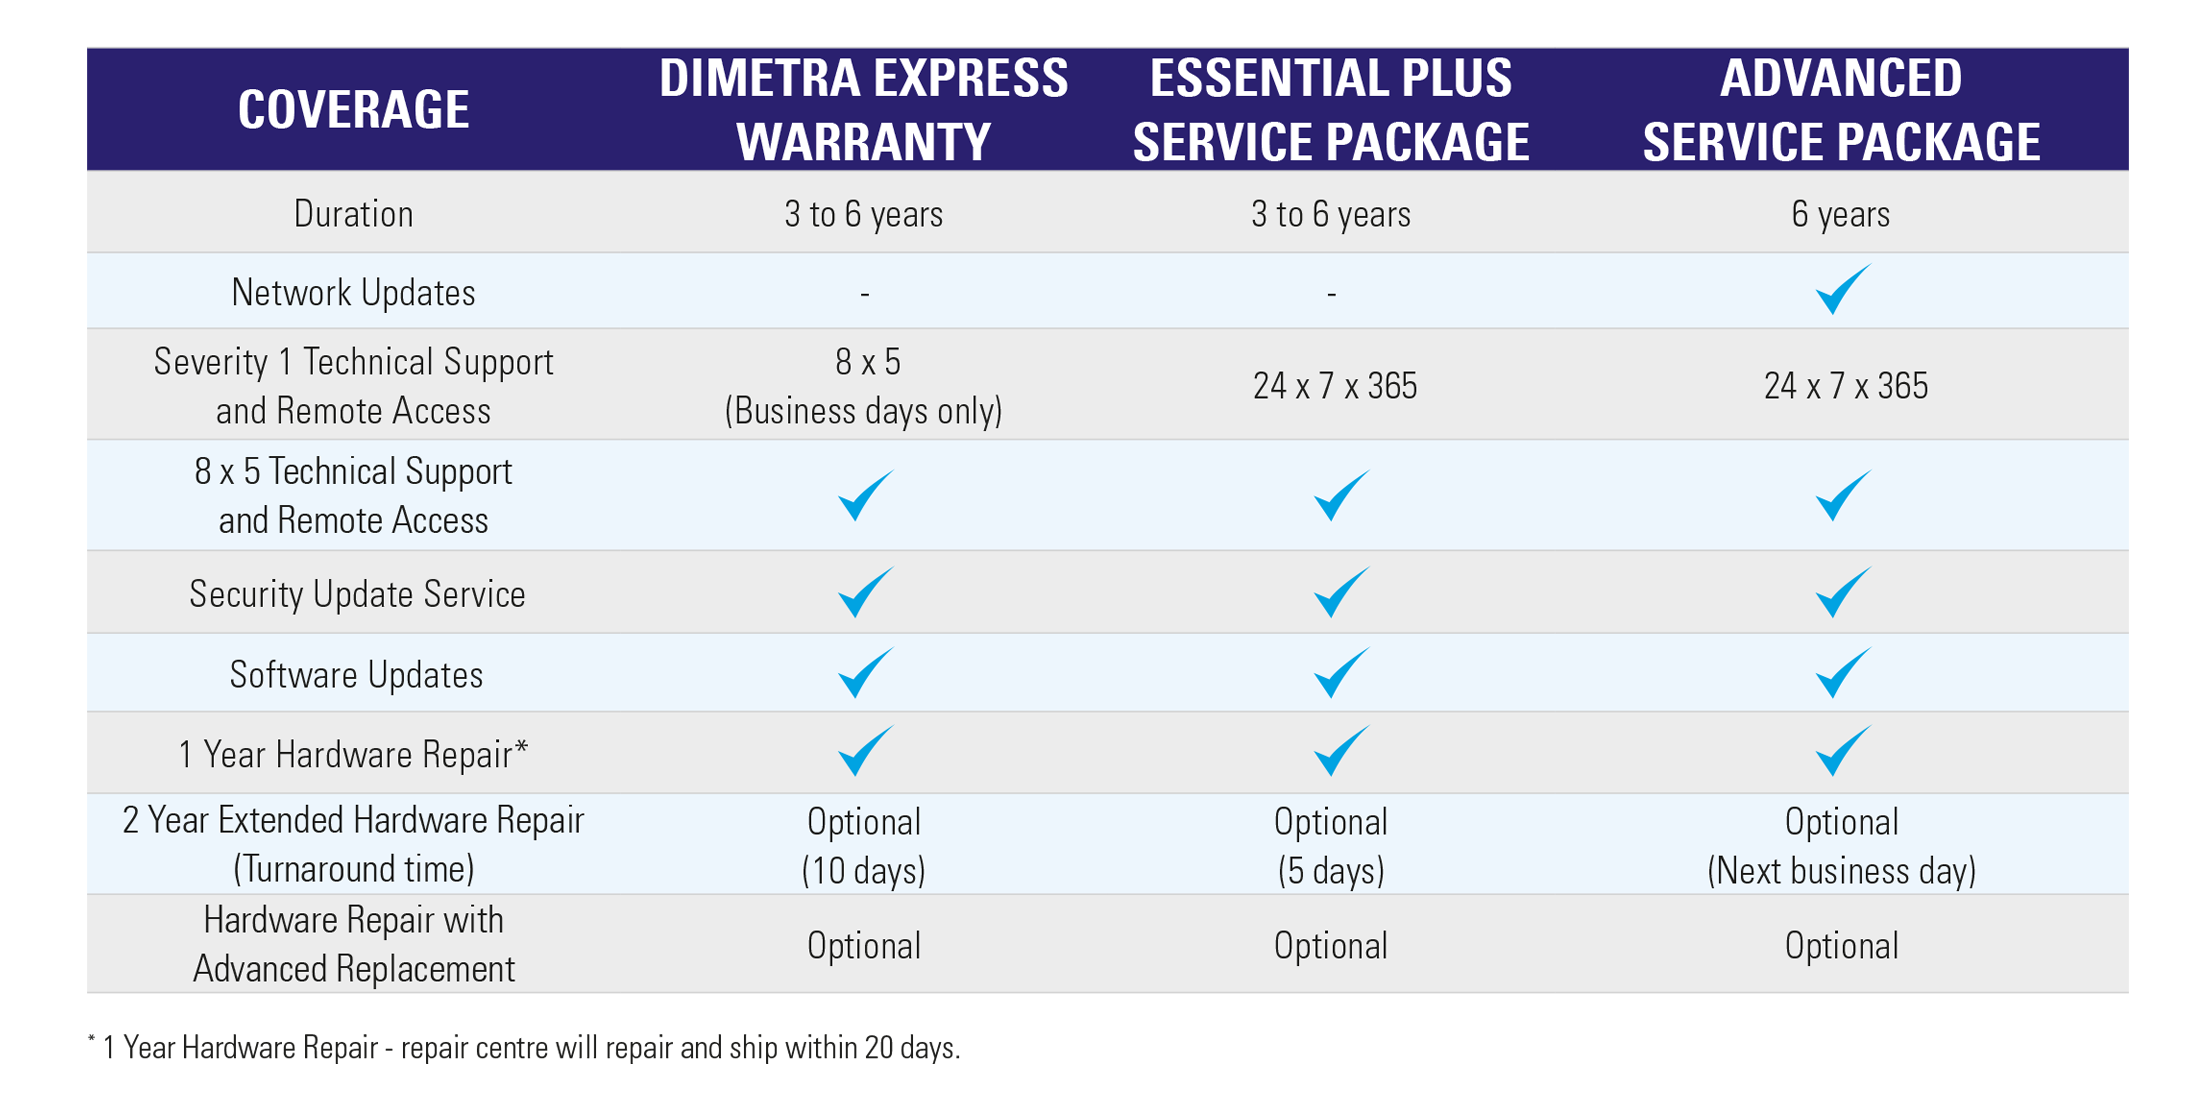 DIMETRA Express Services Table